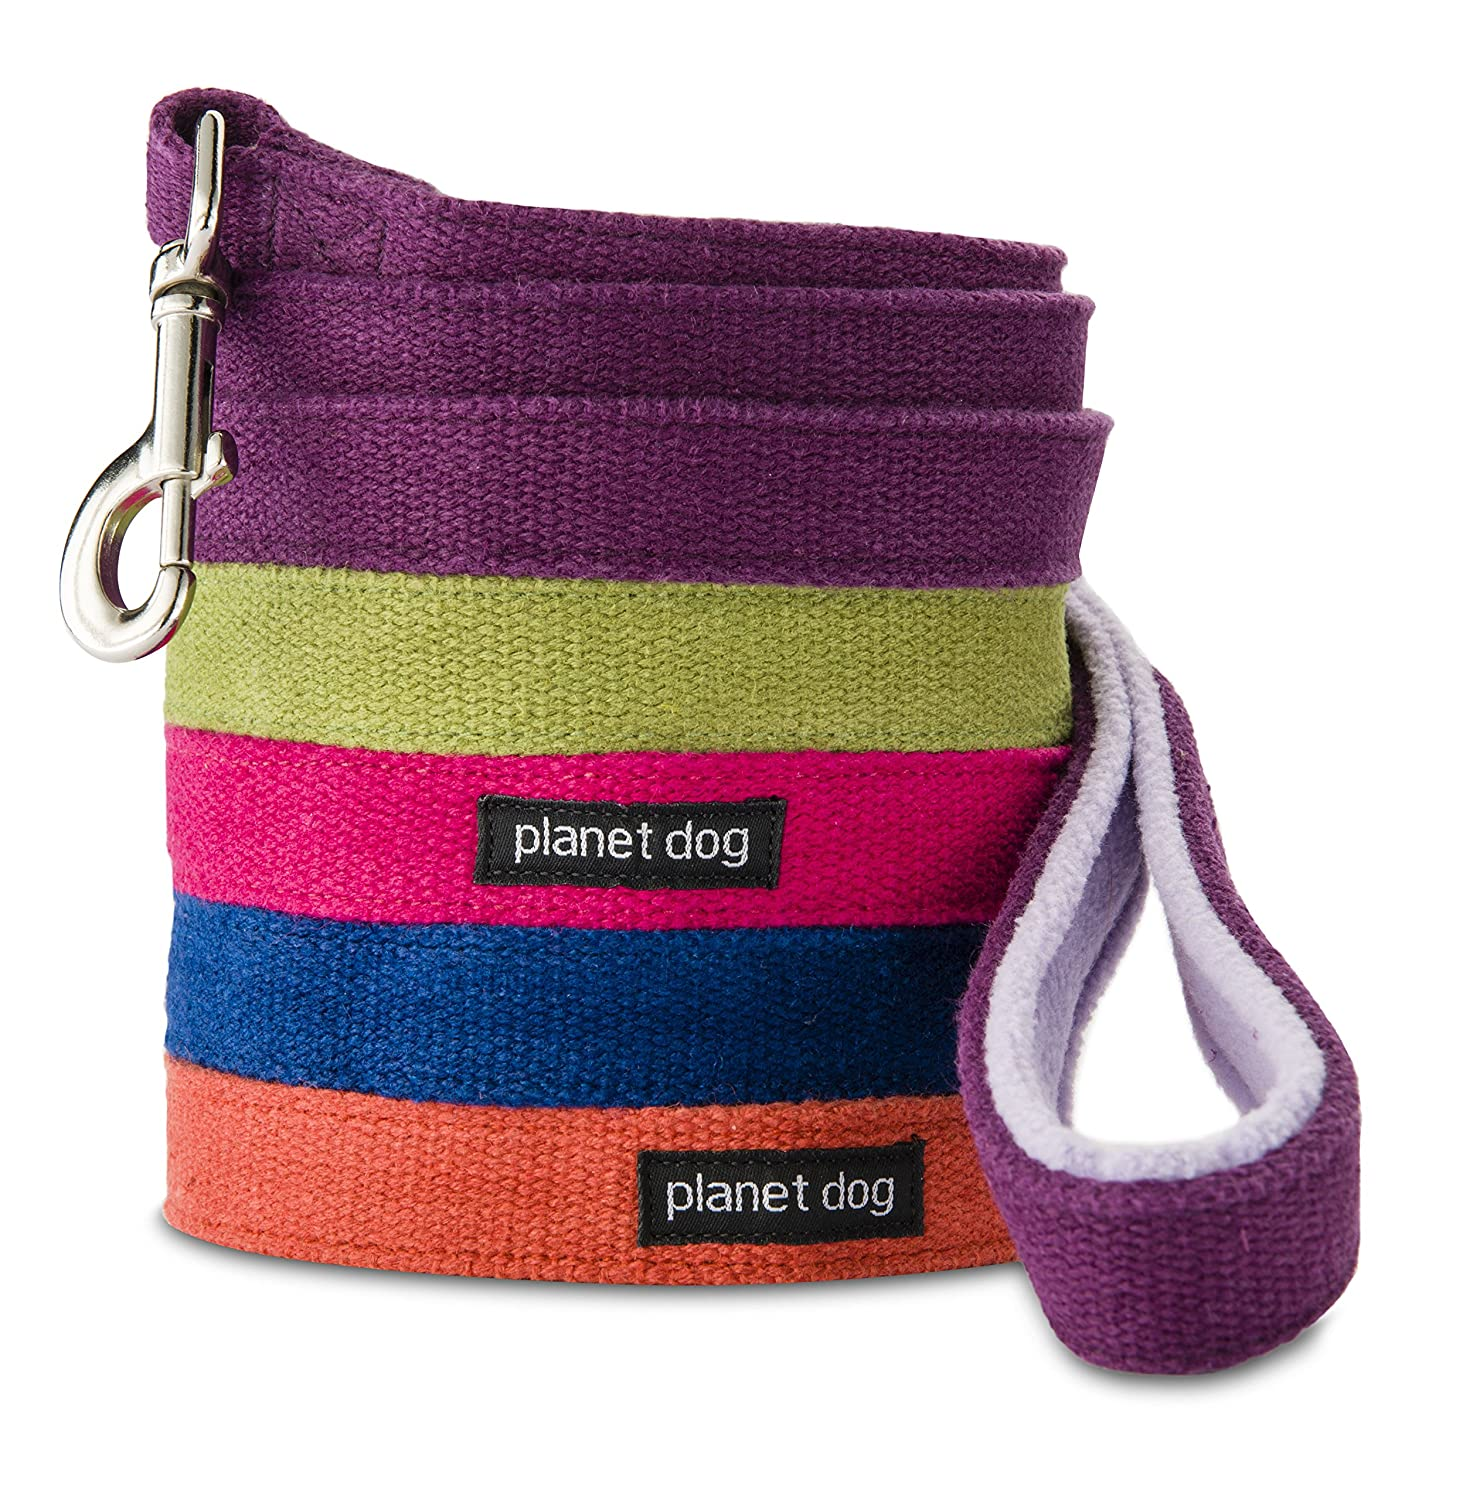 Planet Dog 5 Foot Natural Hemp Dog Leash with Fleece Lined Handle Pink